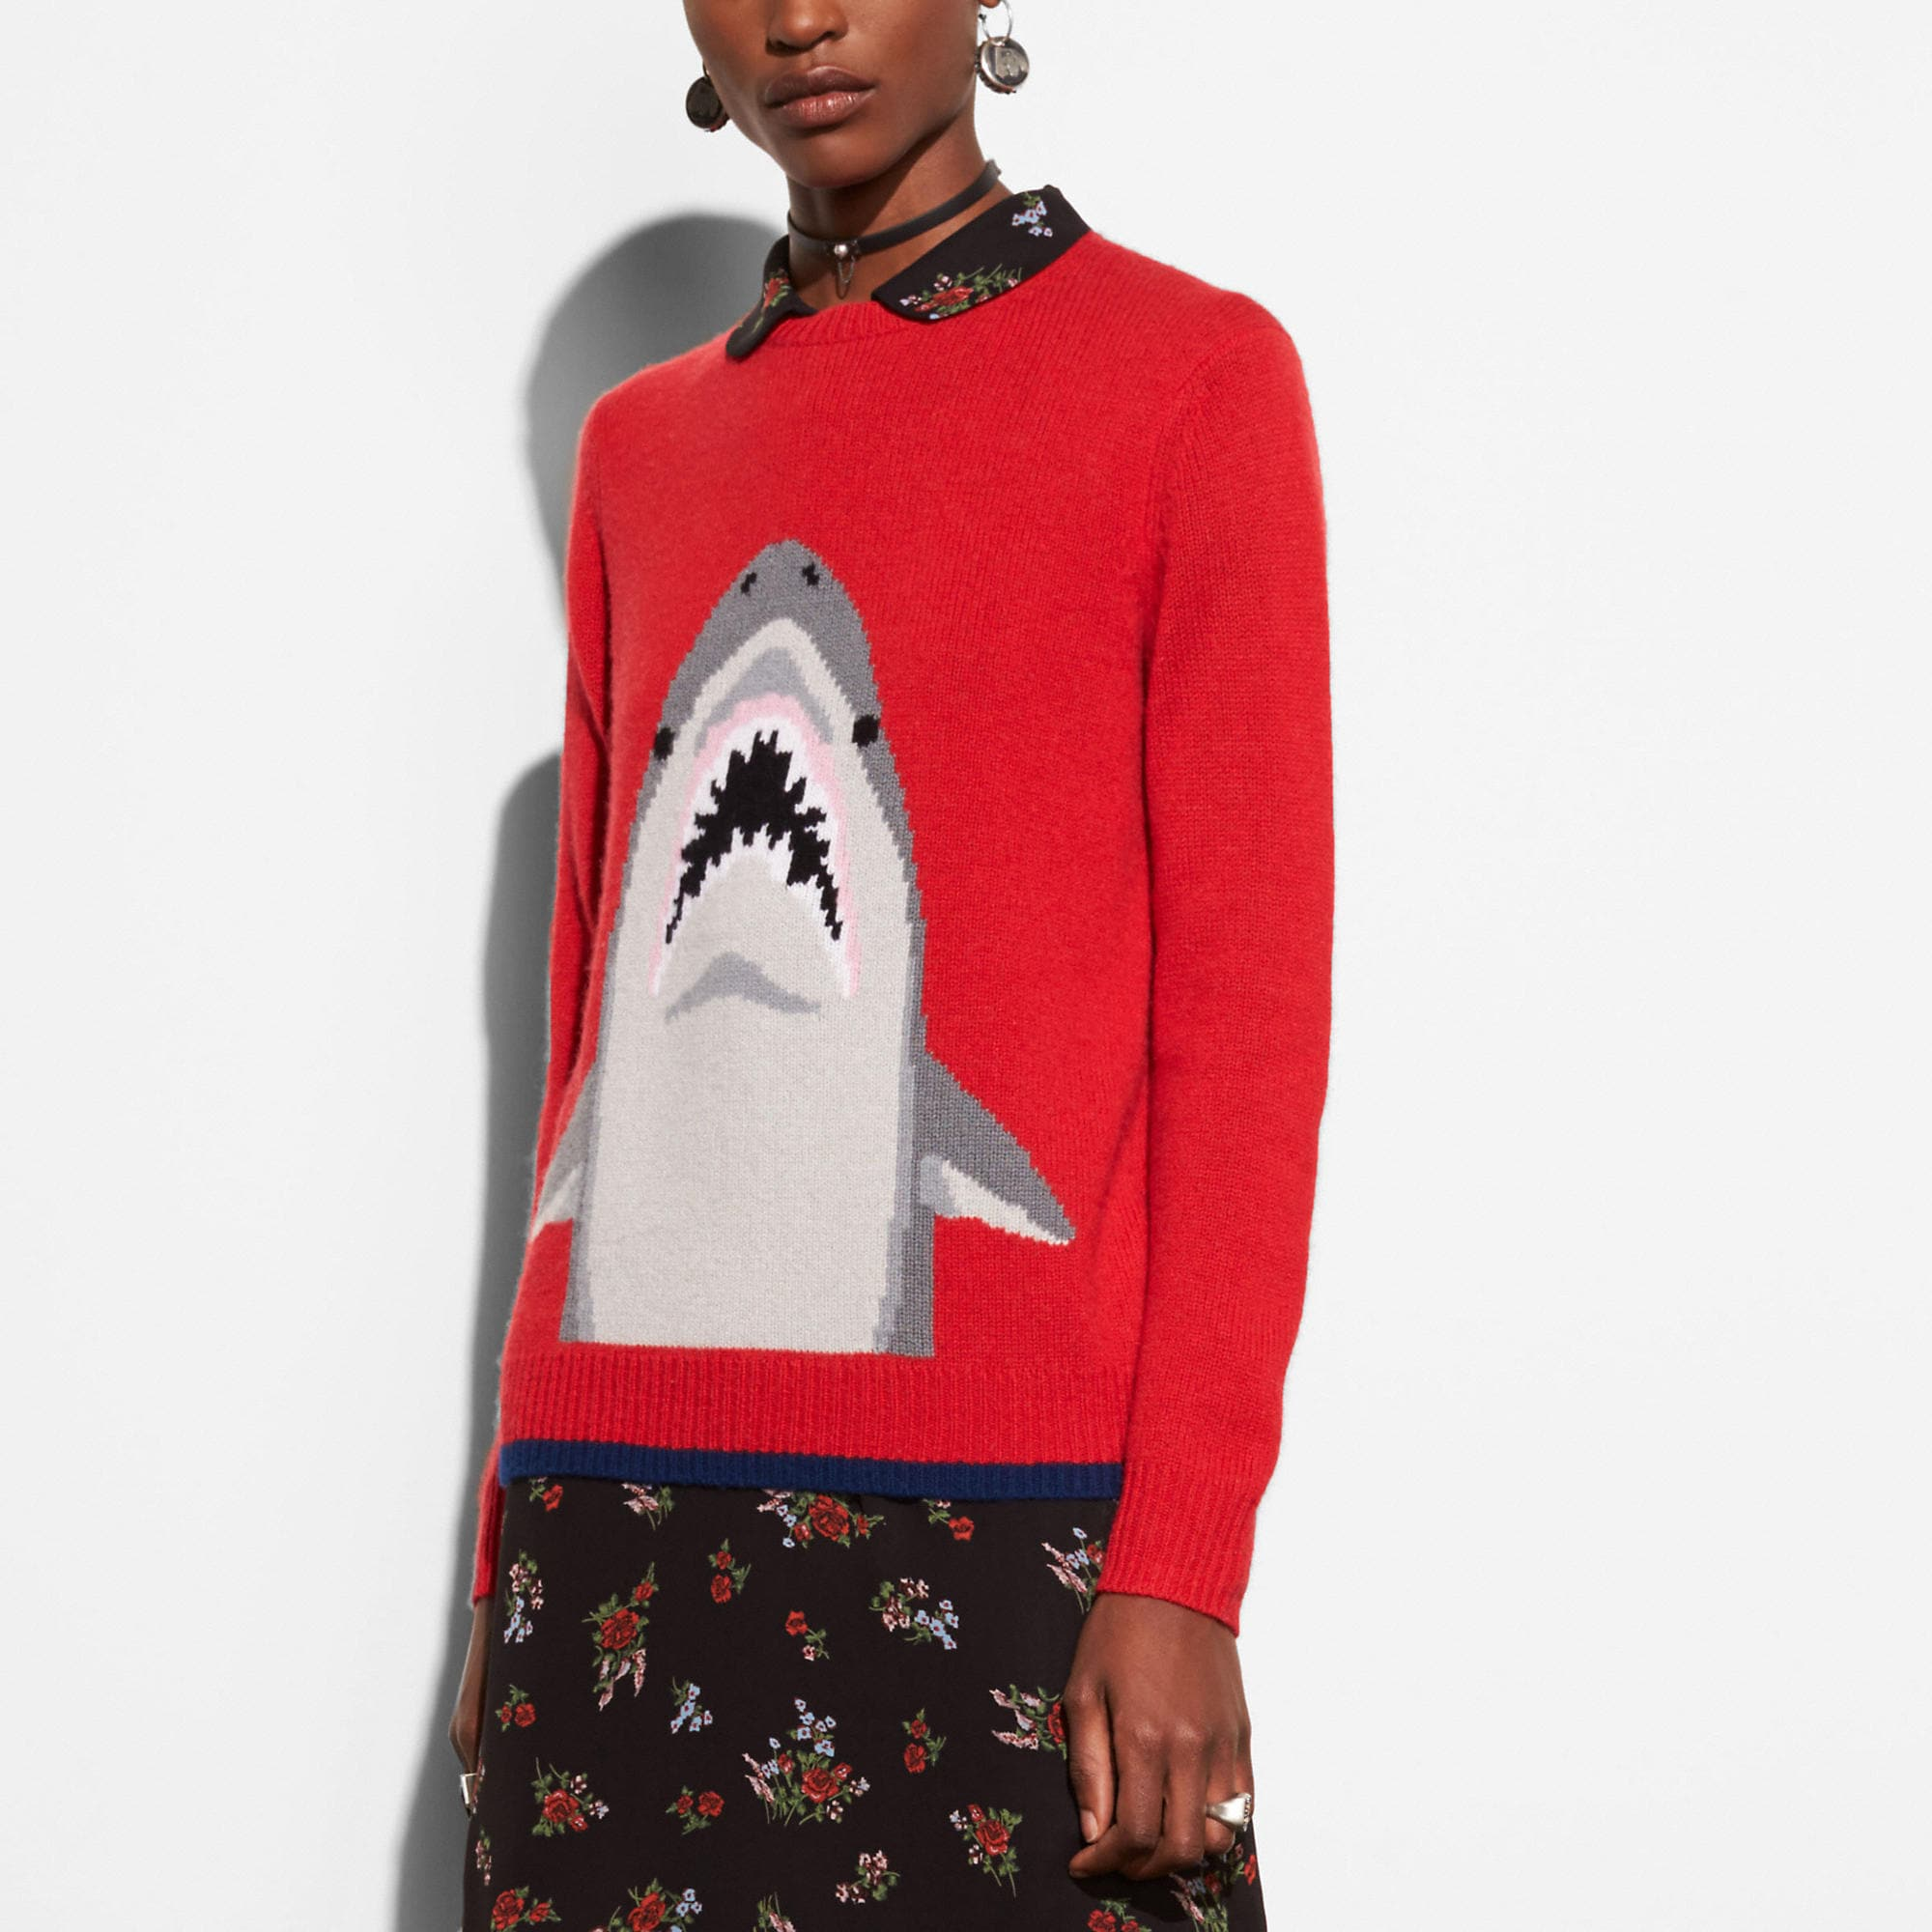 Coach Shark Crewneck